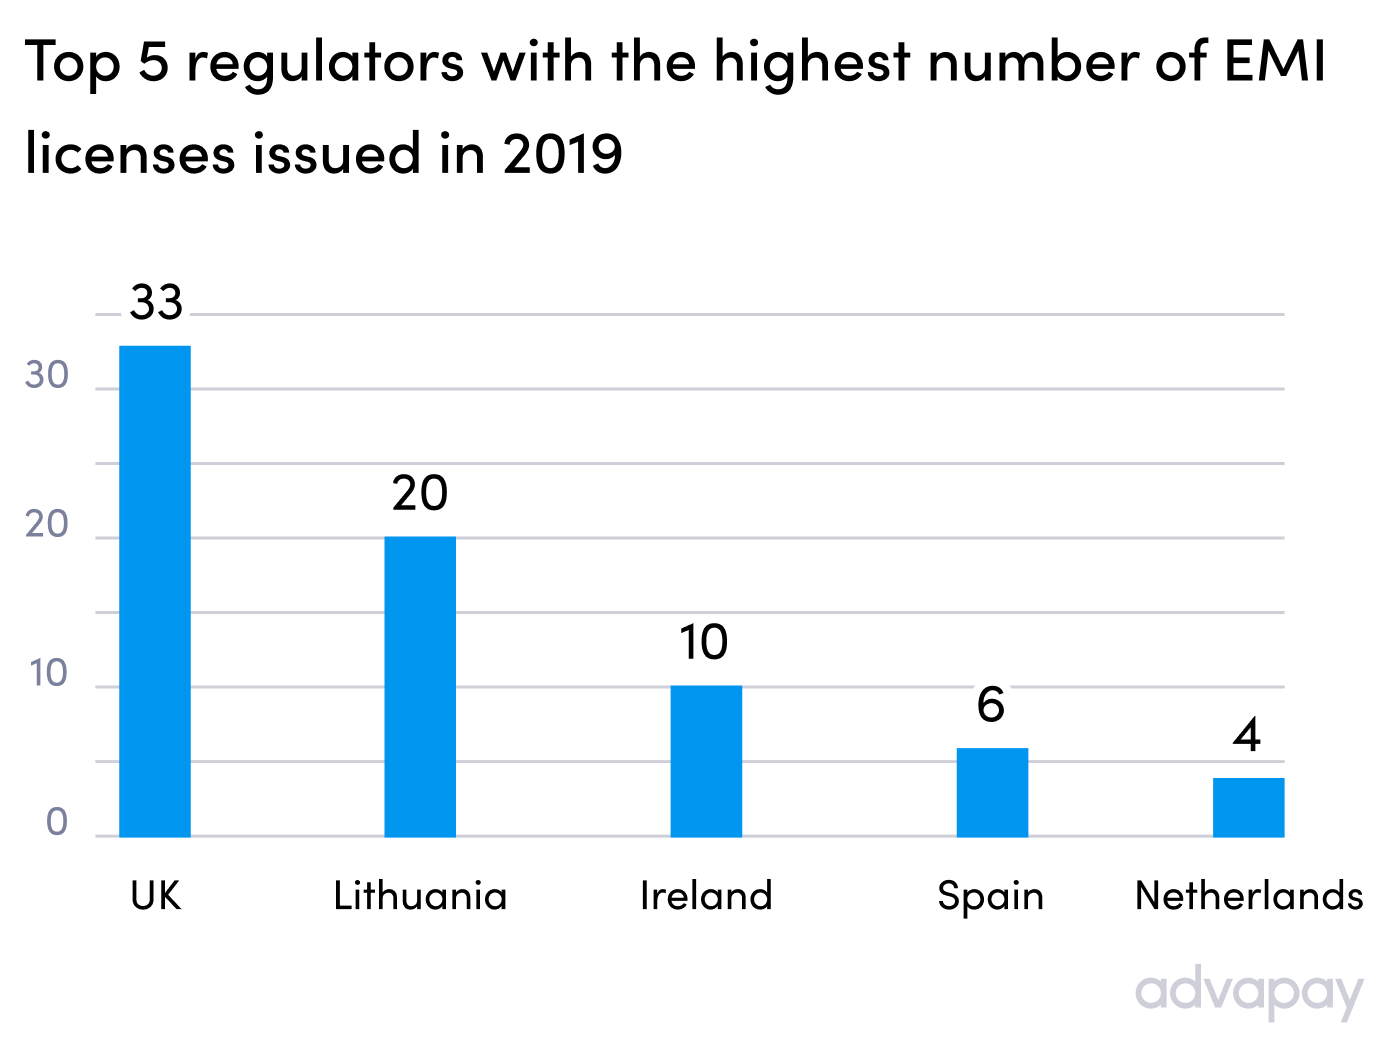 Top 5 regulators with the highest number of EMI licenses issued in 2019